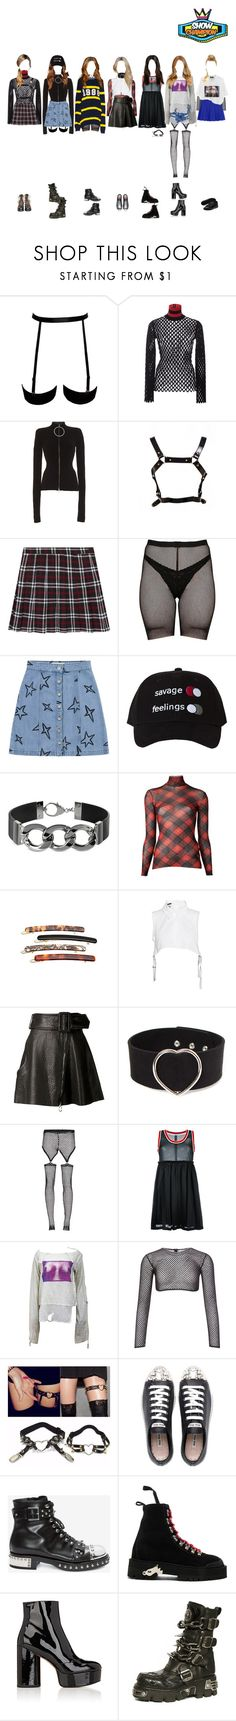 """""""(Melody) Karma at Show Champion"""" by k-p0p101 ❤ liked on Polyvore featuring Alexander Wang, Emilio Pucci, Dora Mojzes, Être Cécile, Pluma, Jean-Paul Gaultier, France Luxe, Ann Demeulemeester, Carven and Bohemian Society"""